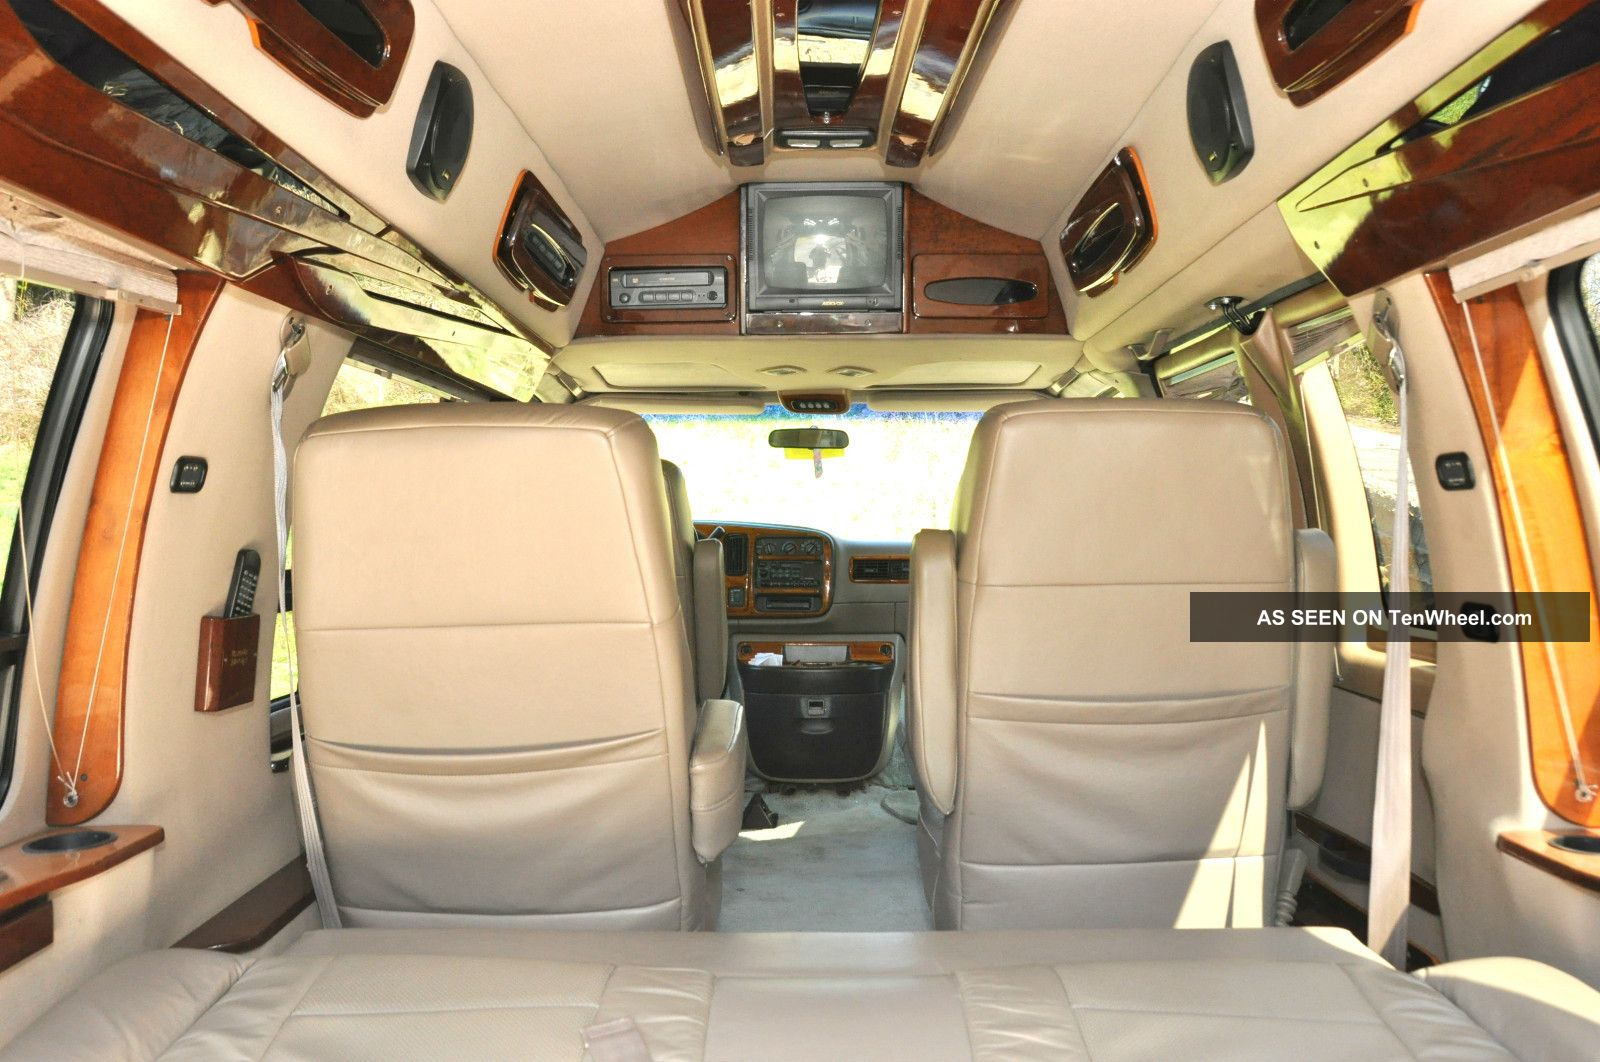 All Chevy 99 chevy express : All Chevy » 1999 Chevrolet Express 1500 - Old Chevy Photos ...